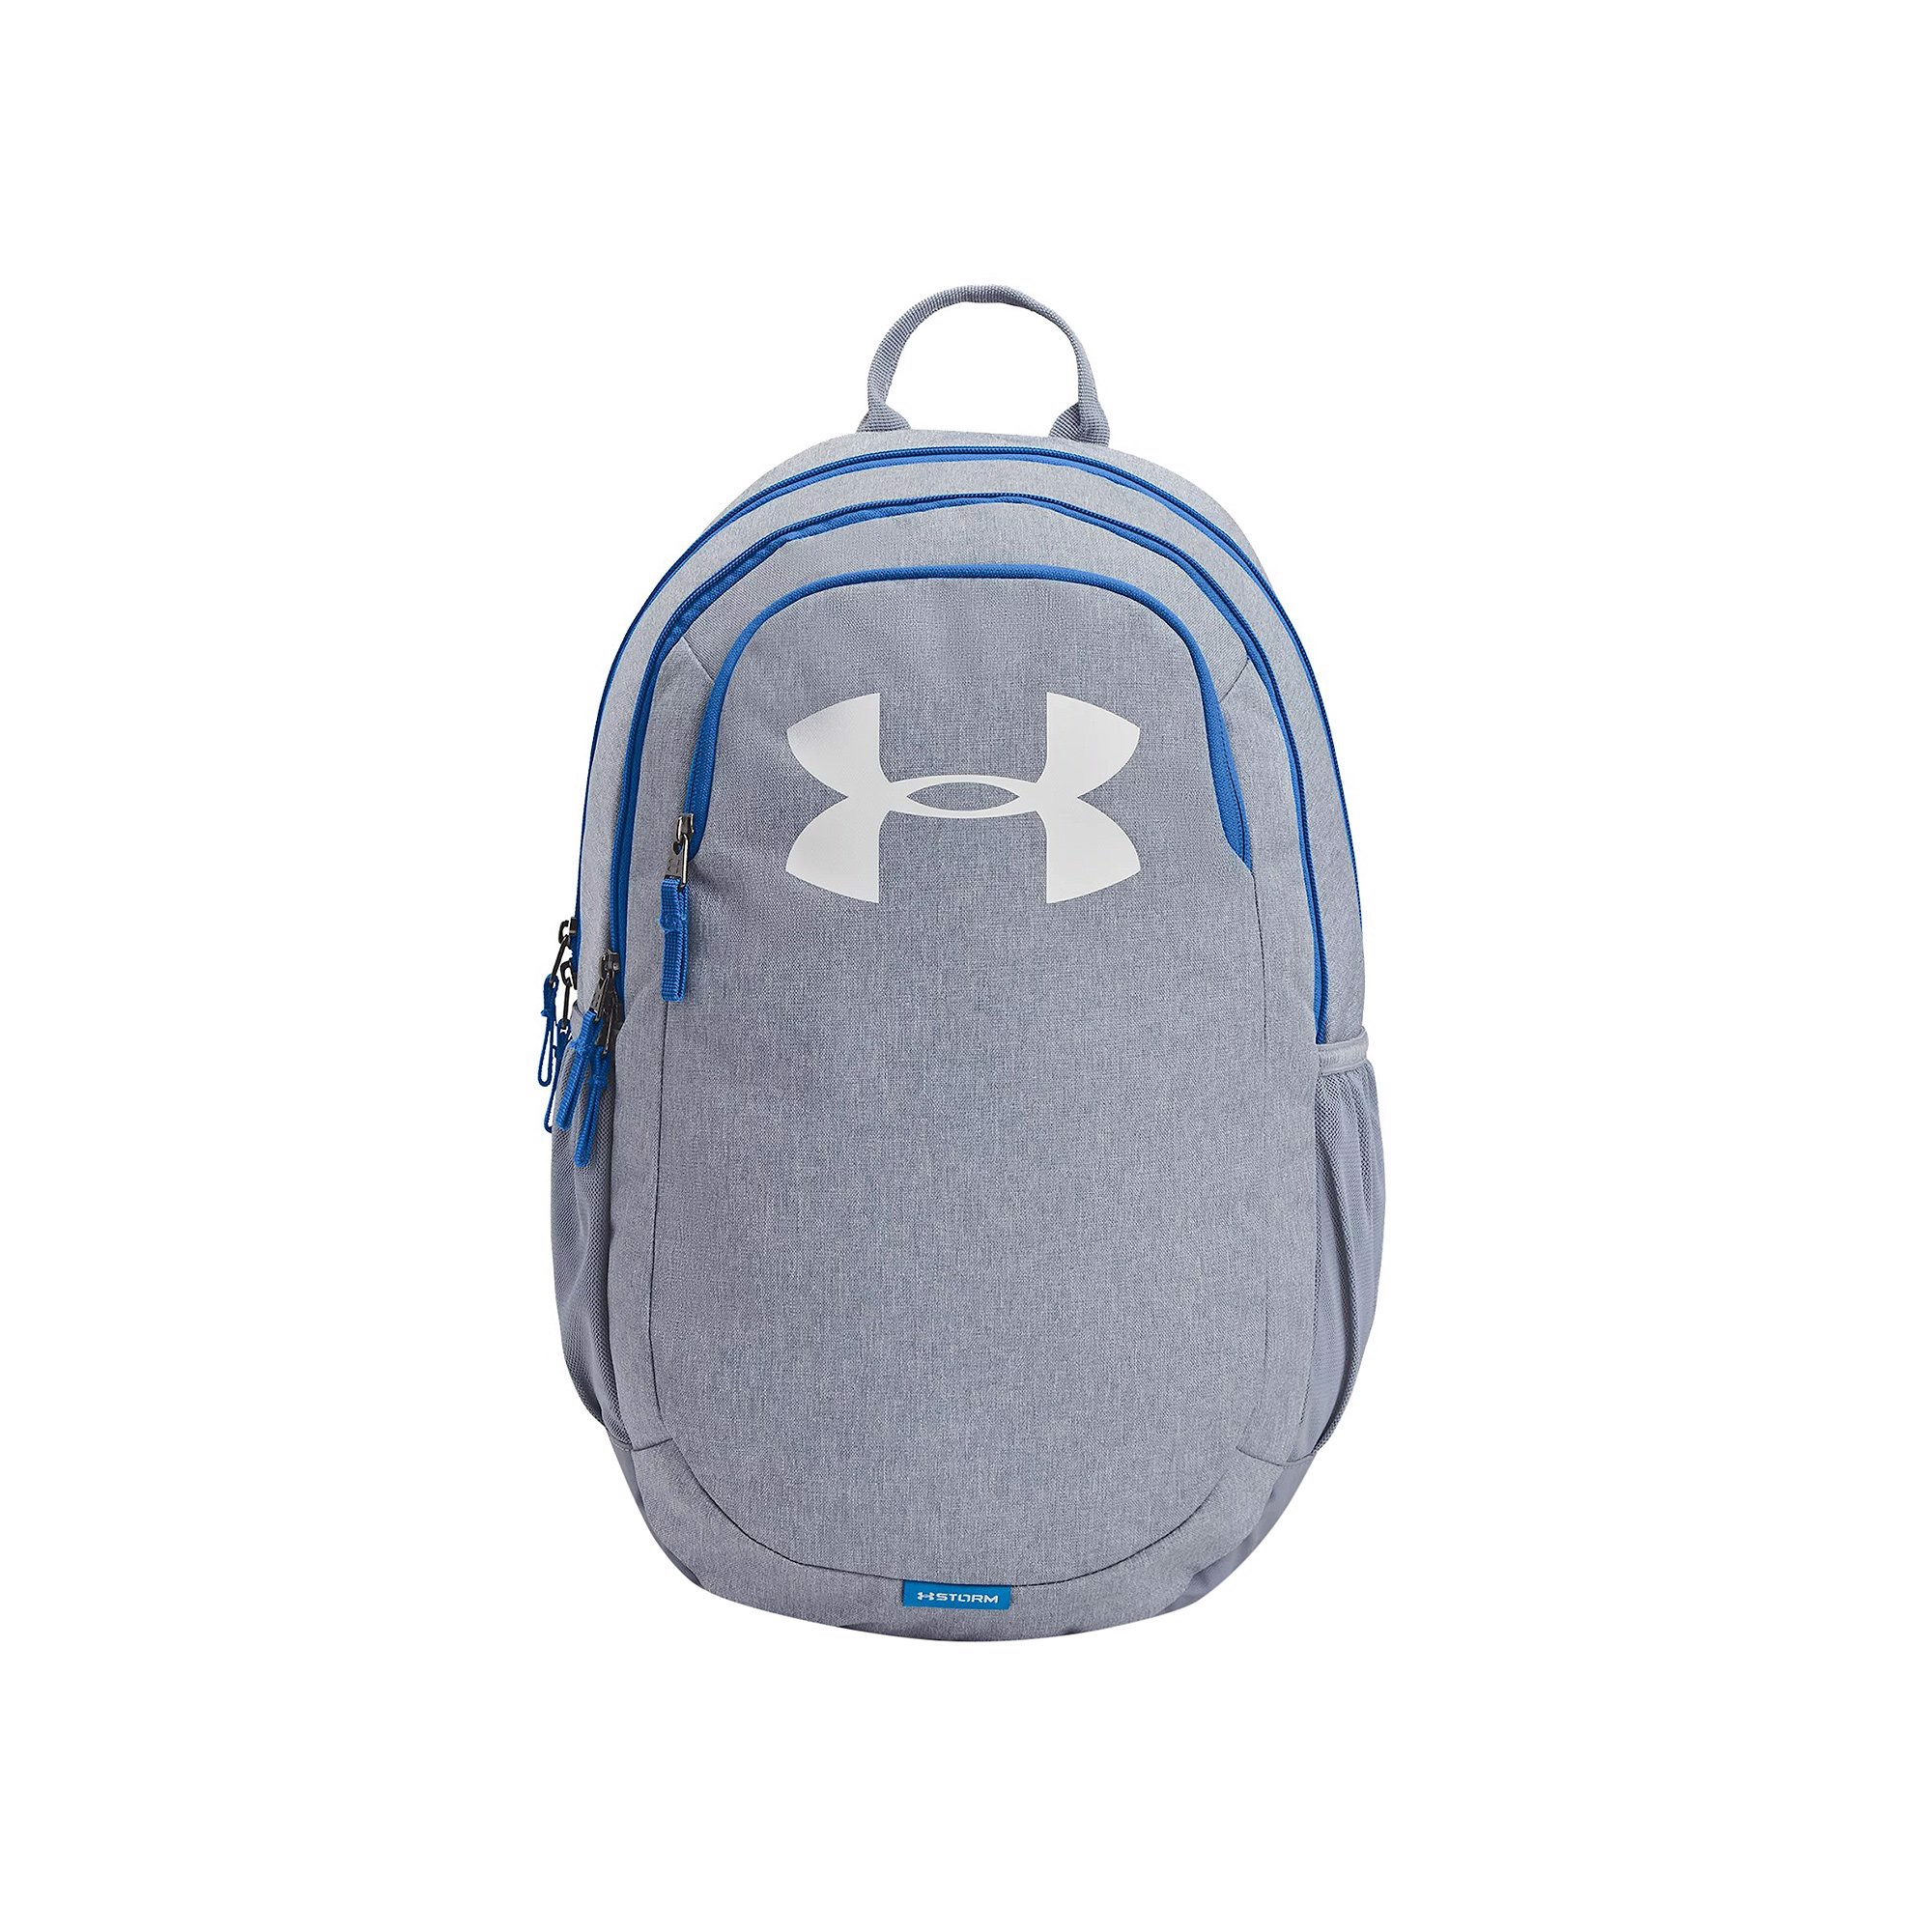 Under Armour - Ba lô nam Nữ Bags Scrimmage 2.0 Backpack Training SS21-1342